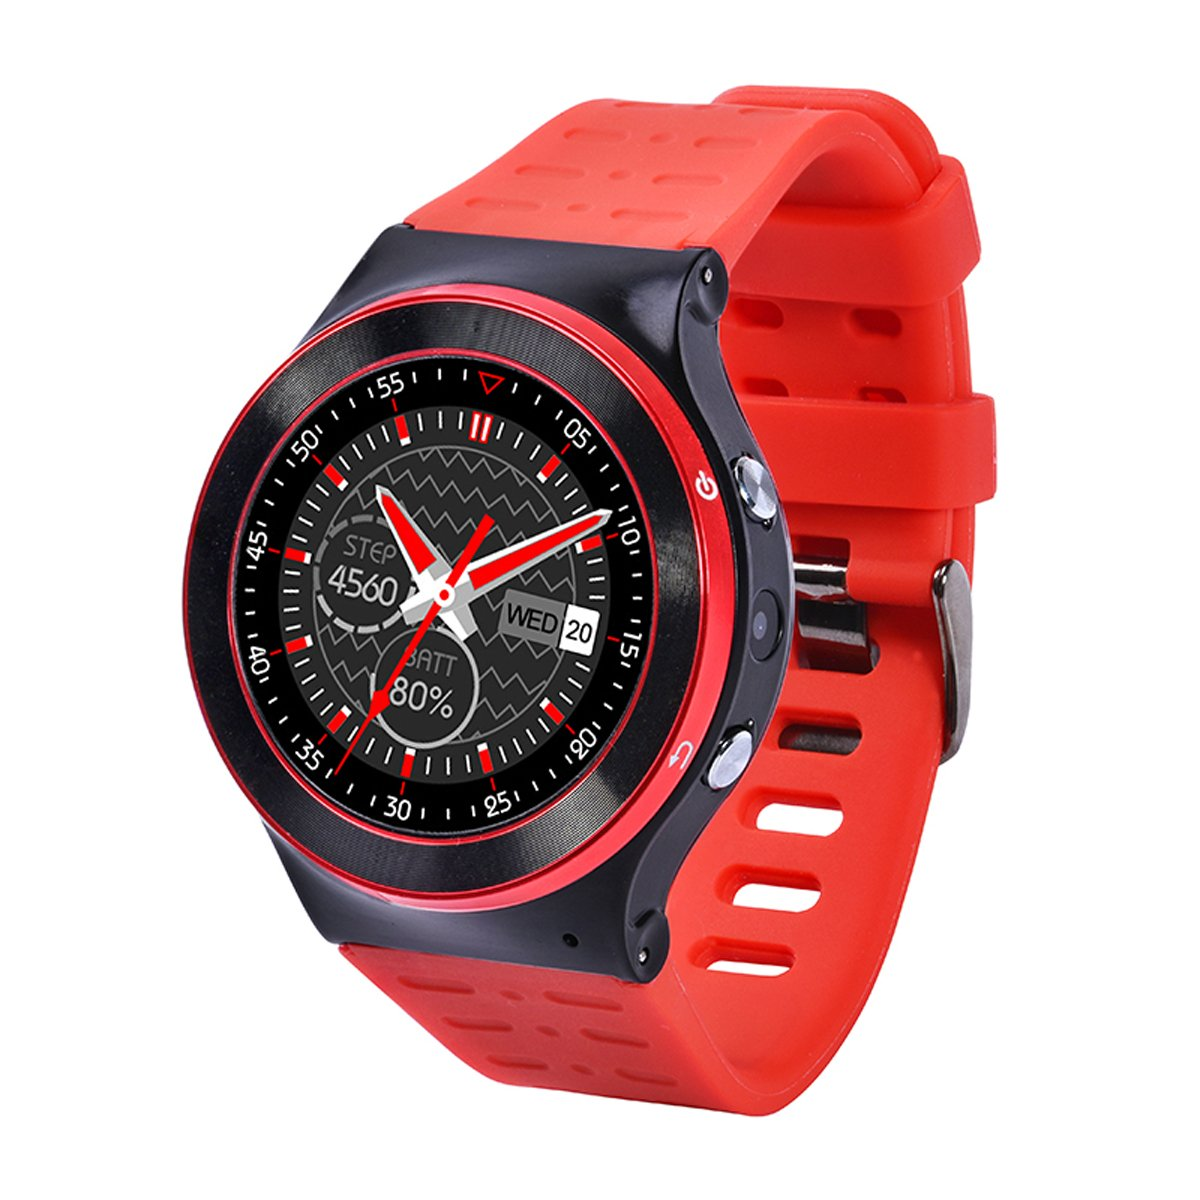 Smart Watch Phone - Red + Black Smart Watch Phone support 2G, 3G NETWORK 8GB